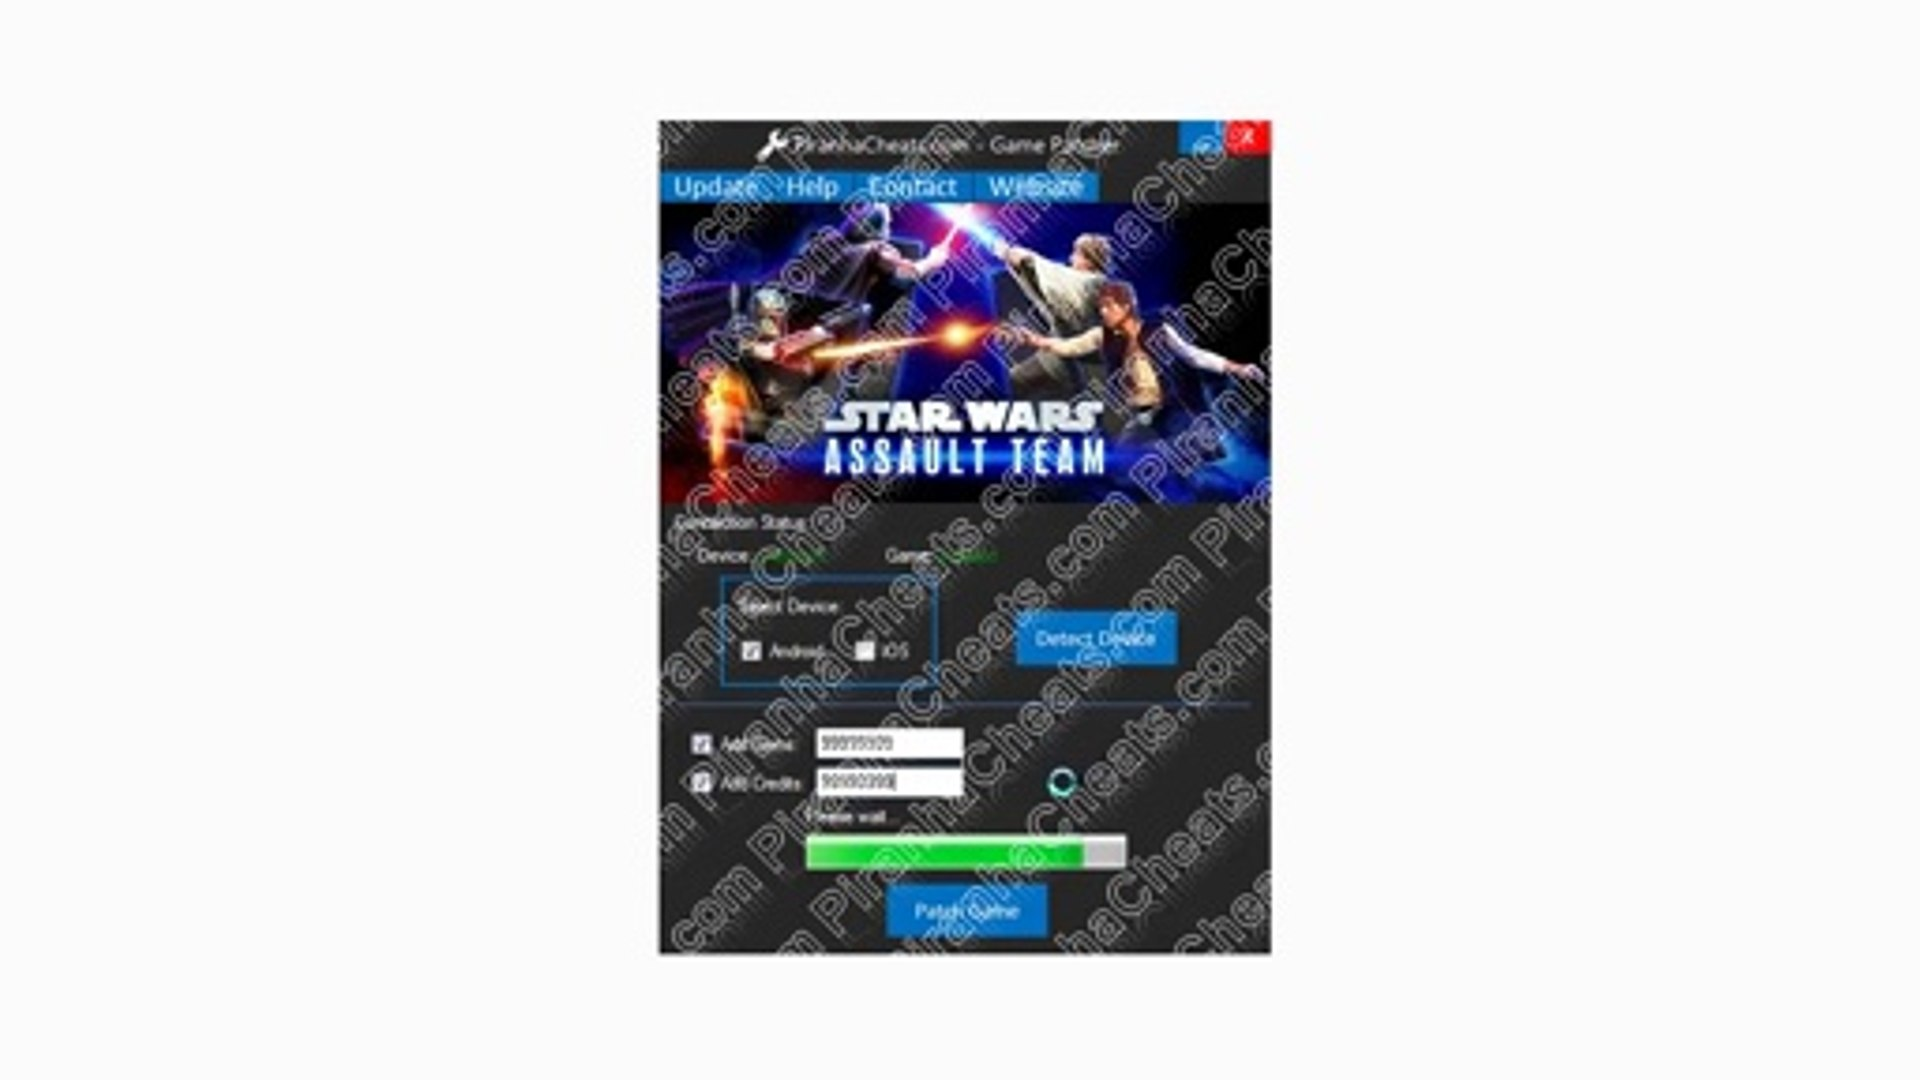 Star Wars Assault Team Cheats Download for Free - Android and iOS